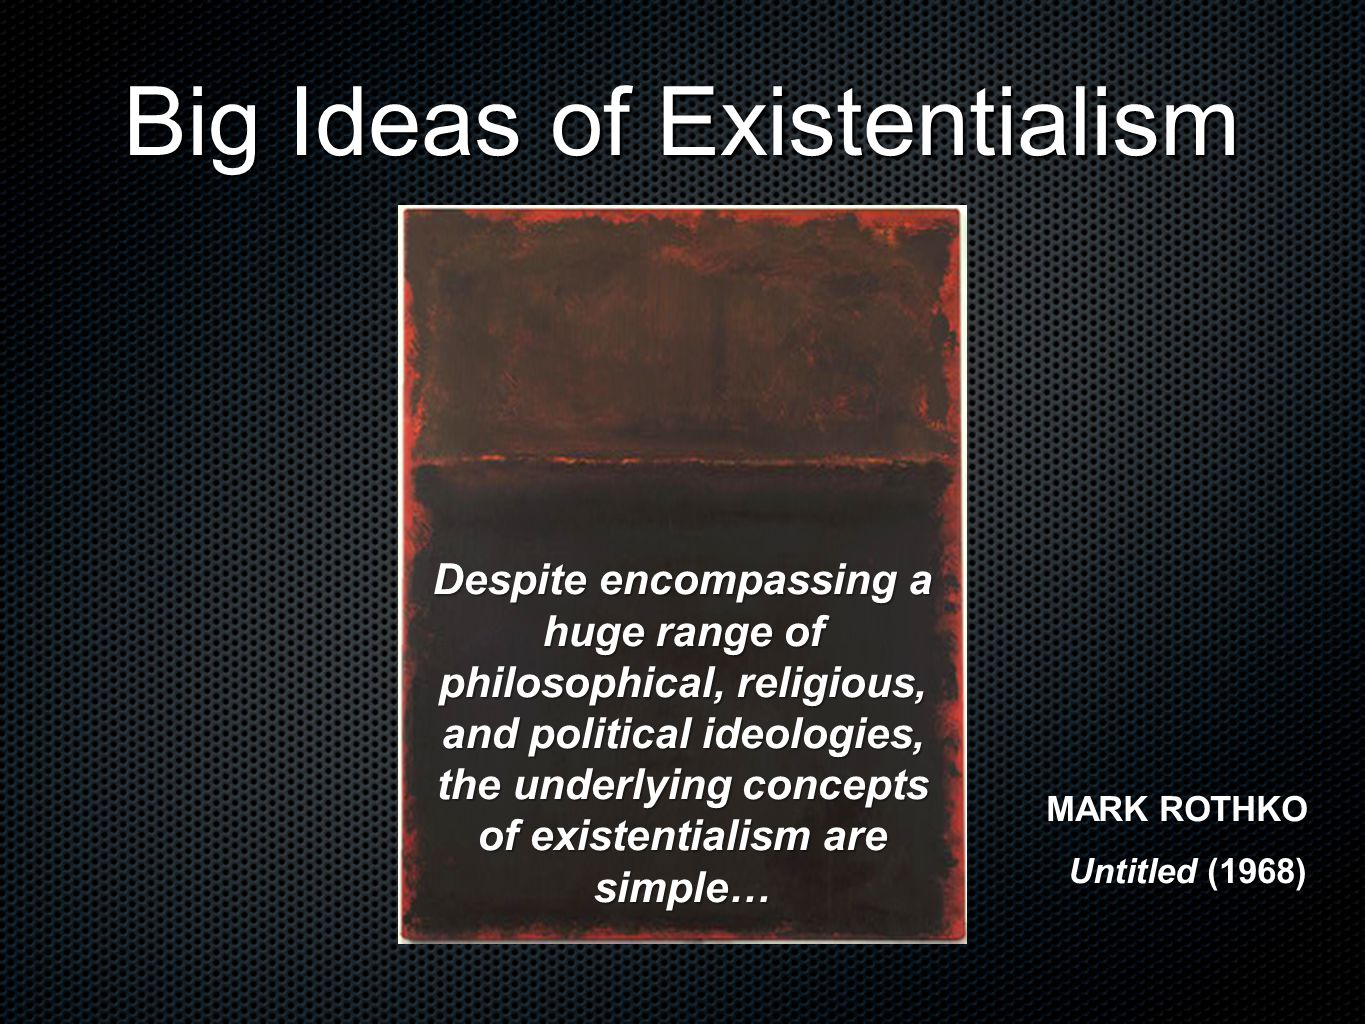 Big Ideas of Existentialism